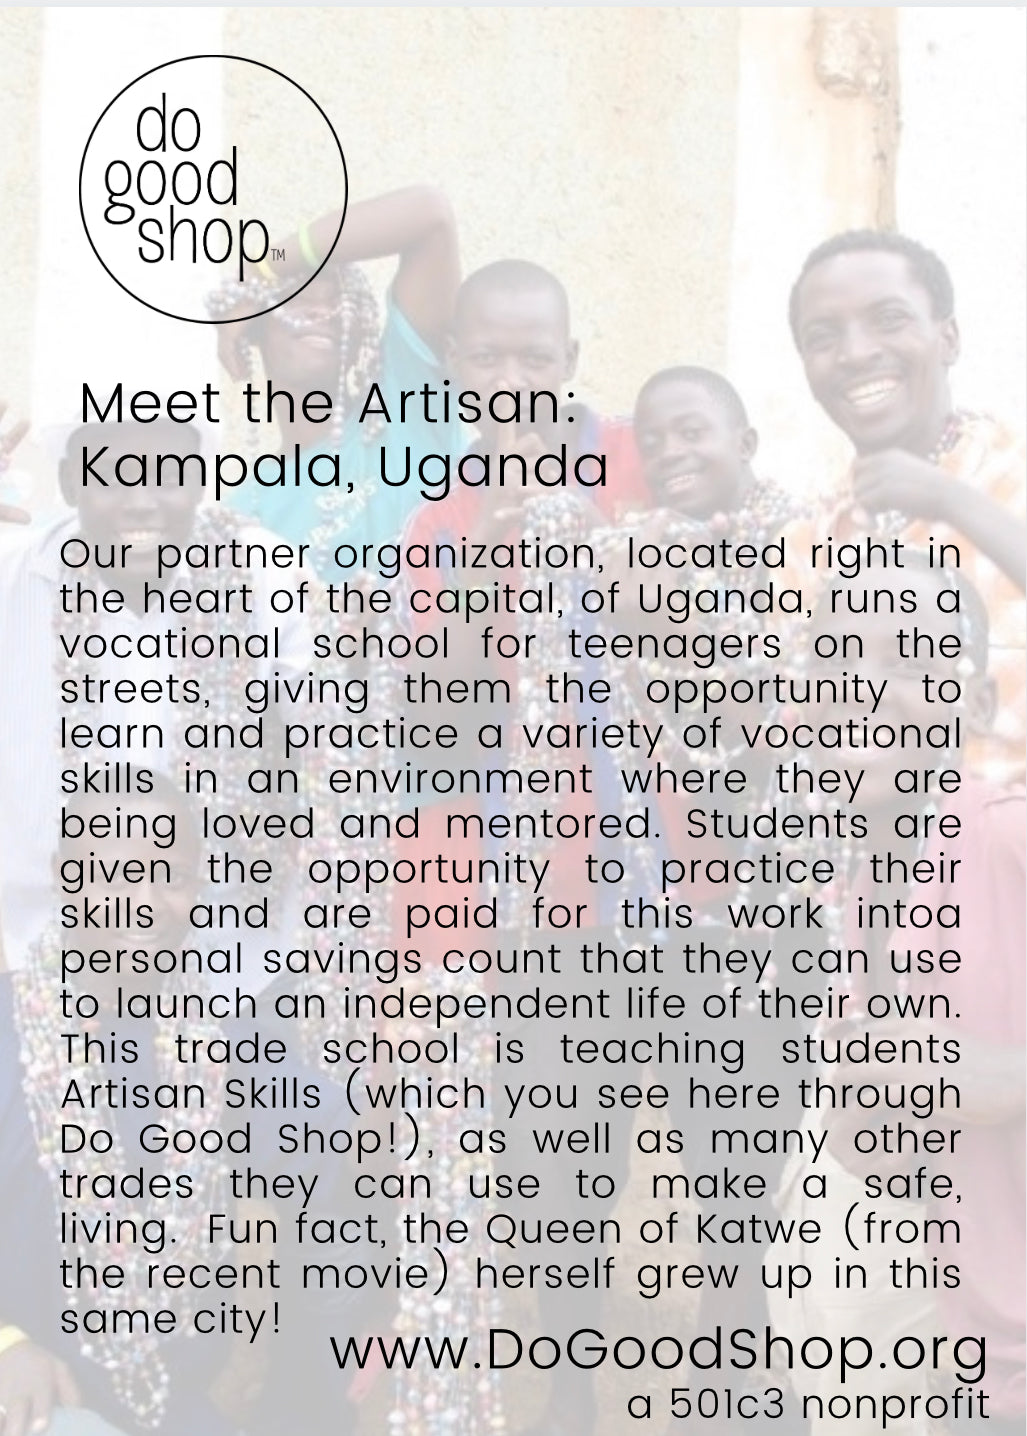 street kids rescued by ethical artisan employment sold through do good shop handmade in uganda